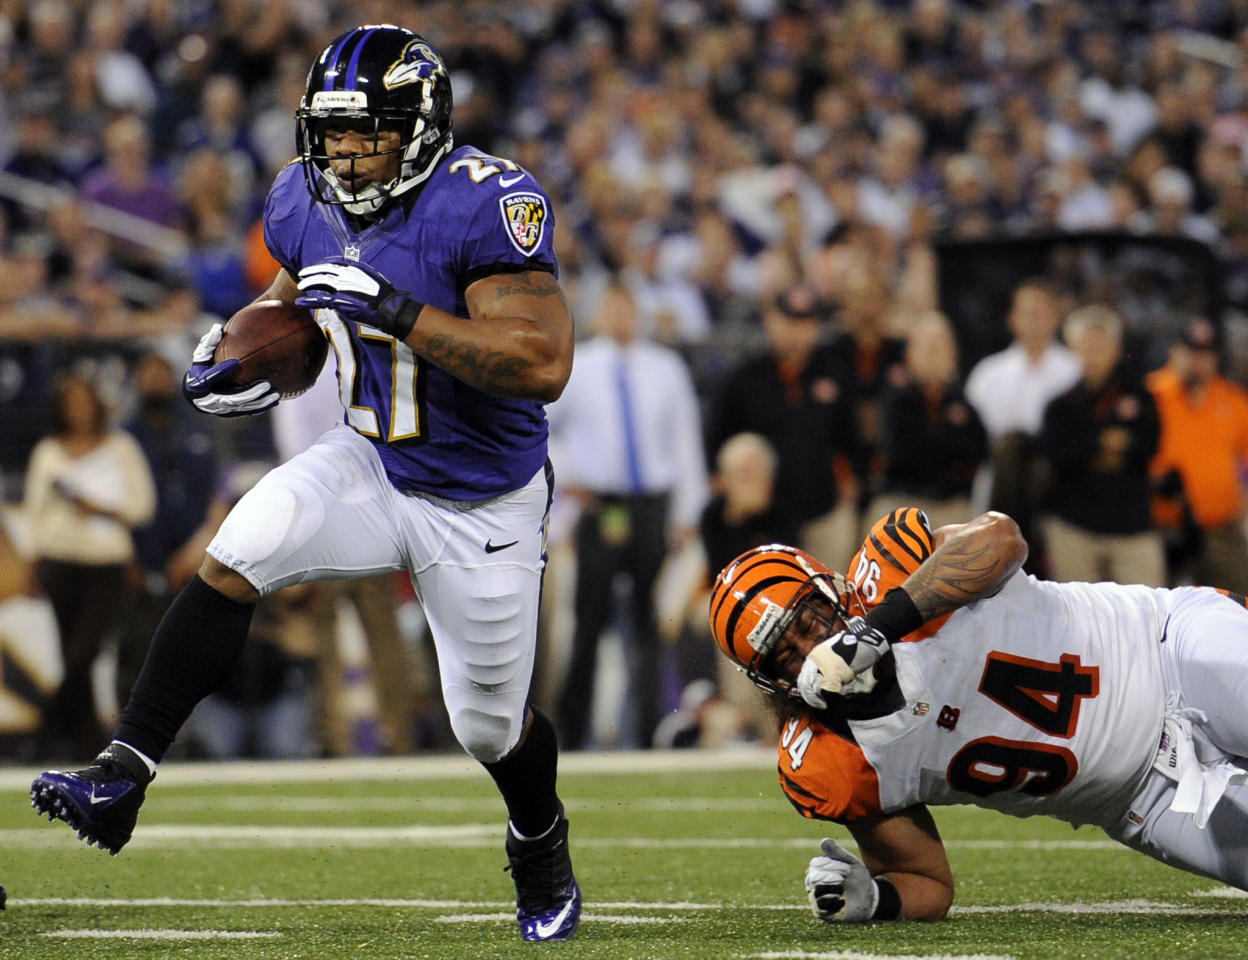 Baltimore Ravens running back Ray Rice, left, rushes past Cincinnati Bengals defensive tackle Domata Peko for a touchdown in the first half of an NFL football game in Baltimore, Monday, Sept. 10, 2012. (AP Photo/Nick Wass)